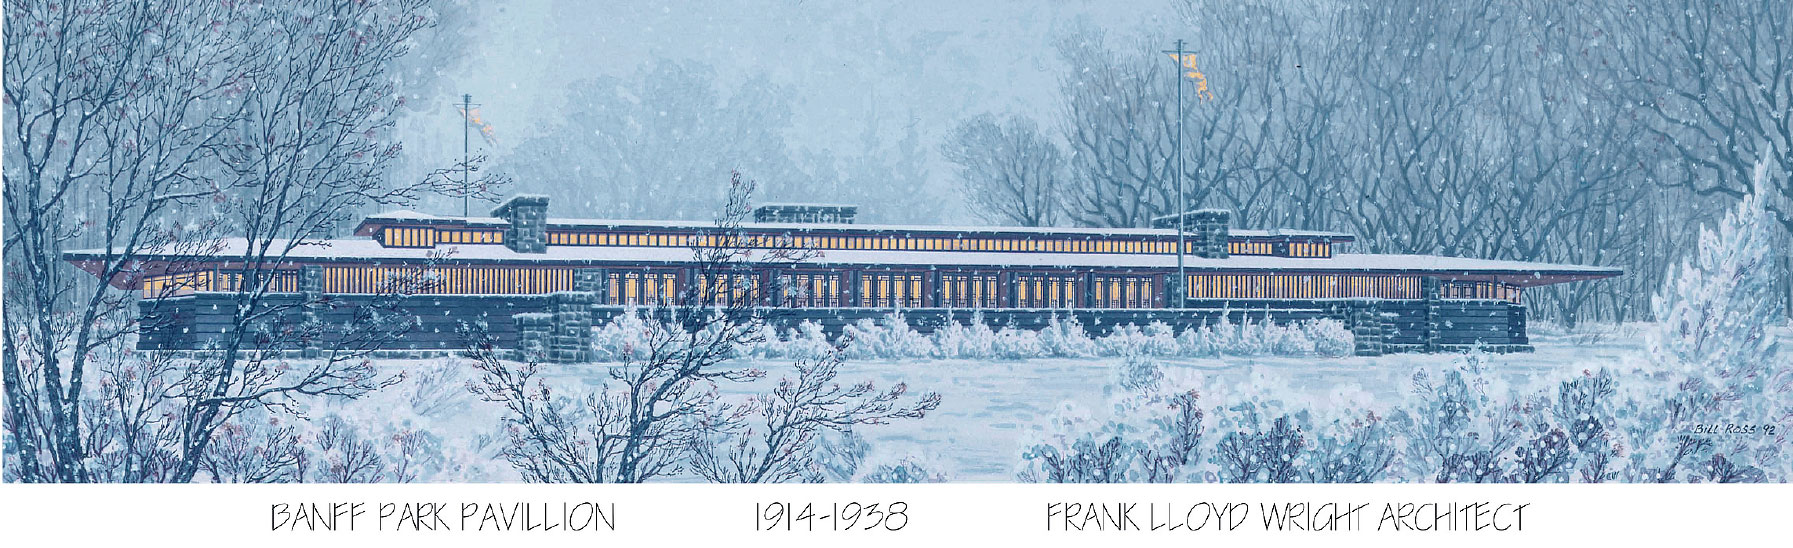 Render of Frank Lloyd Wright's Banff Park Pavilion. Courtesy of Frank Lloyd Wright Revival Initiative.